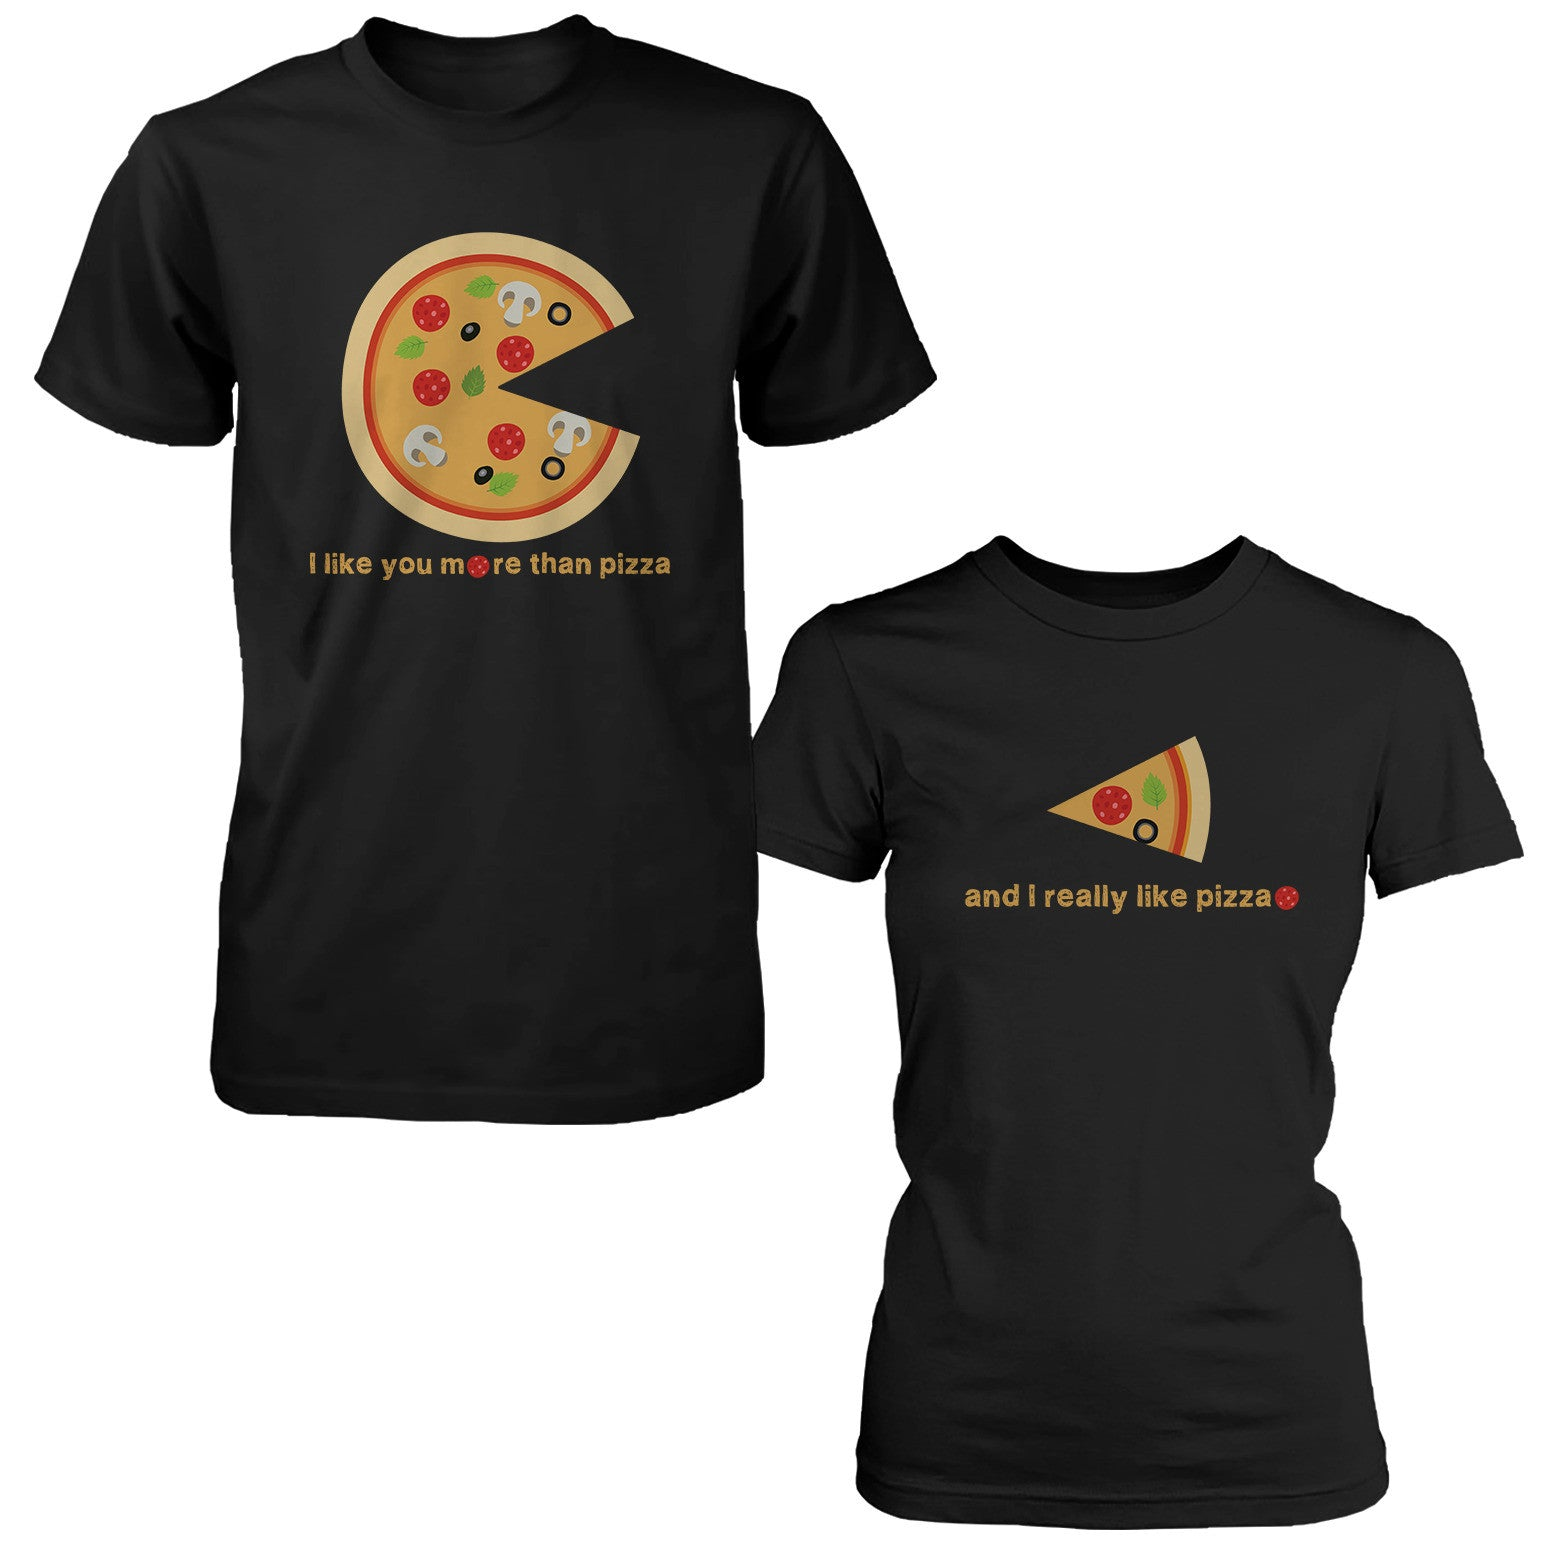 a389c27e I Like You More Than Pizza Matching Couple T-Shirts Valentines Day Gift  Foodies -